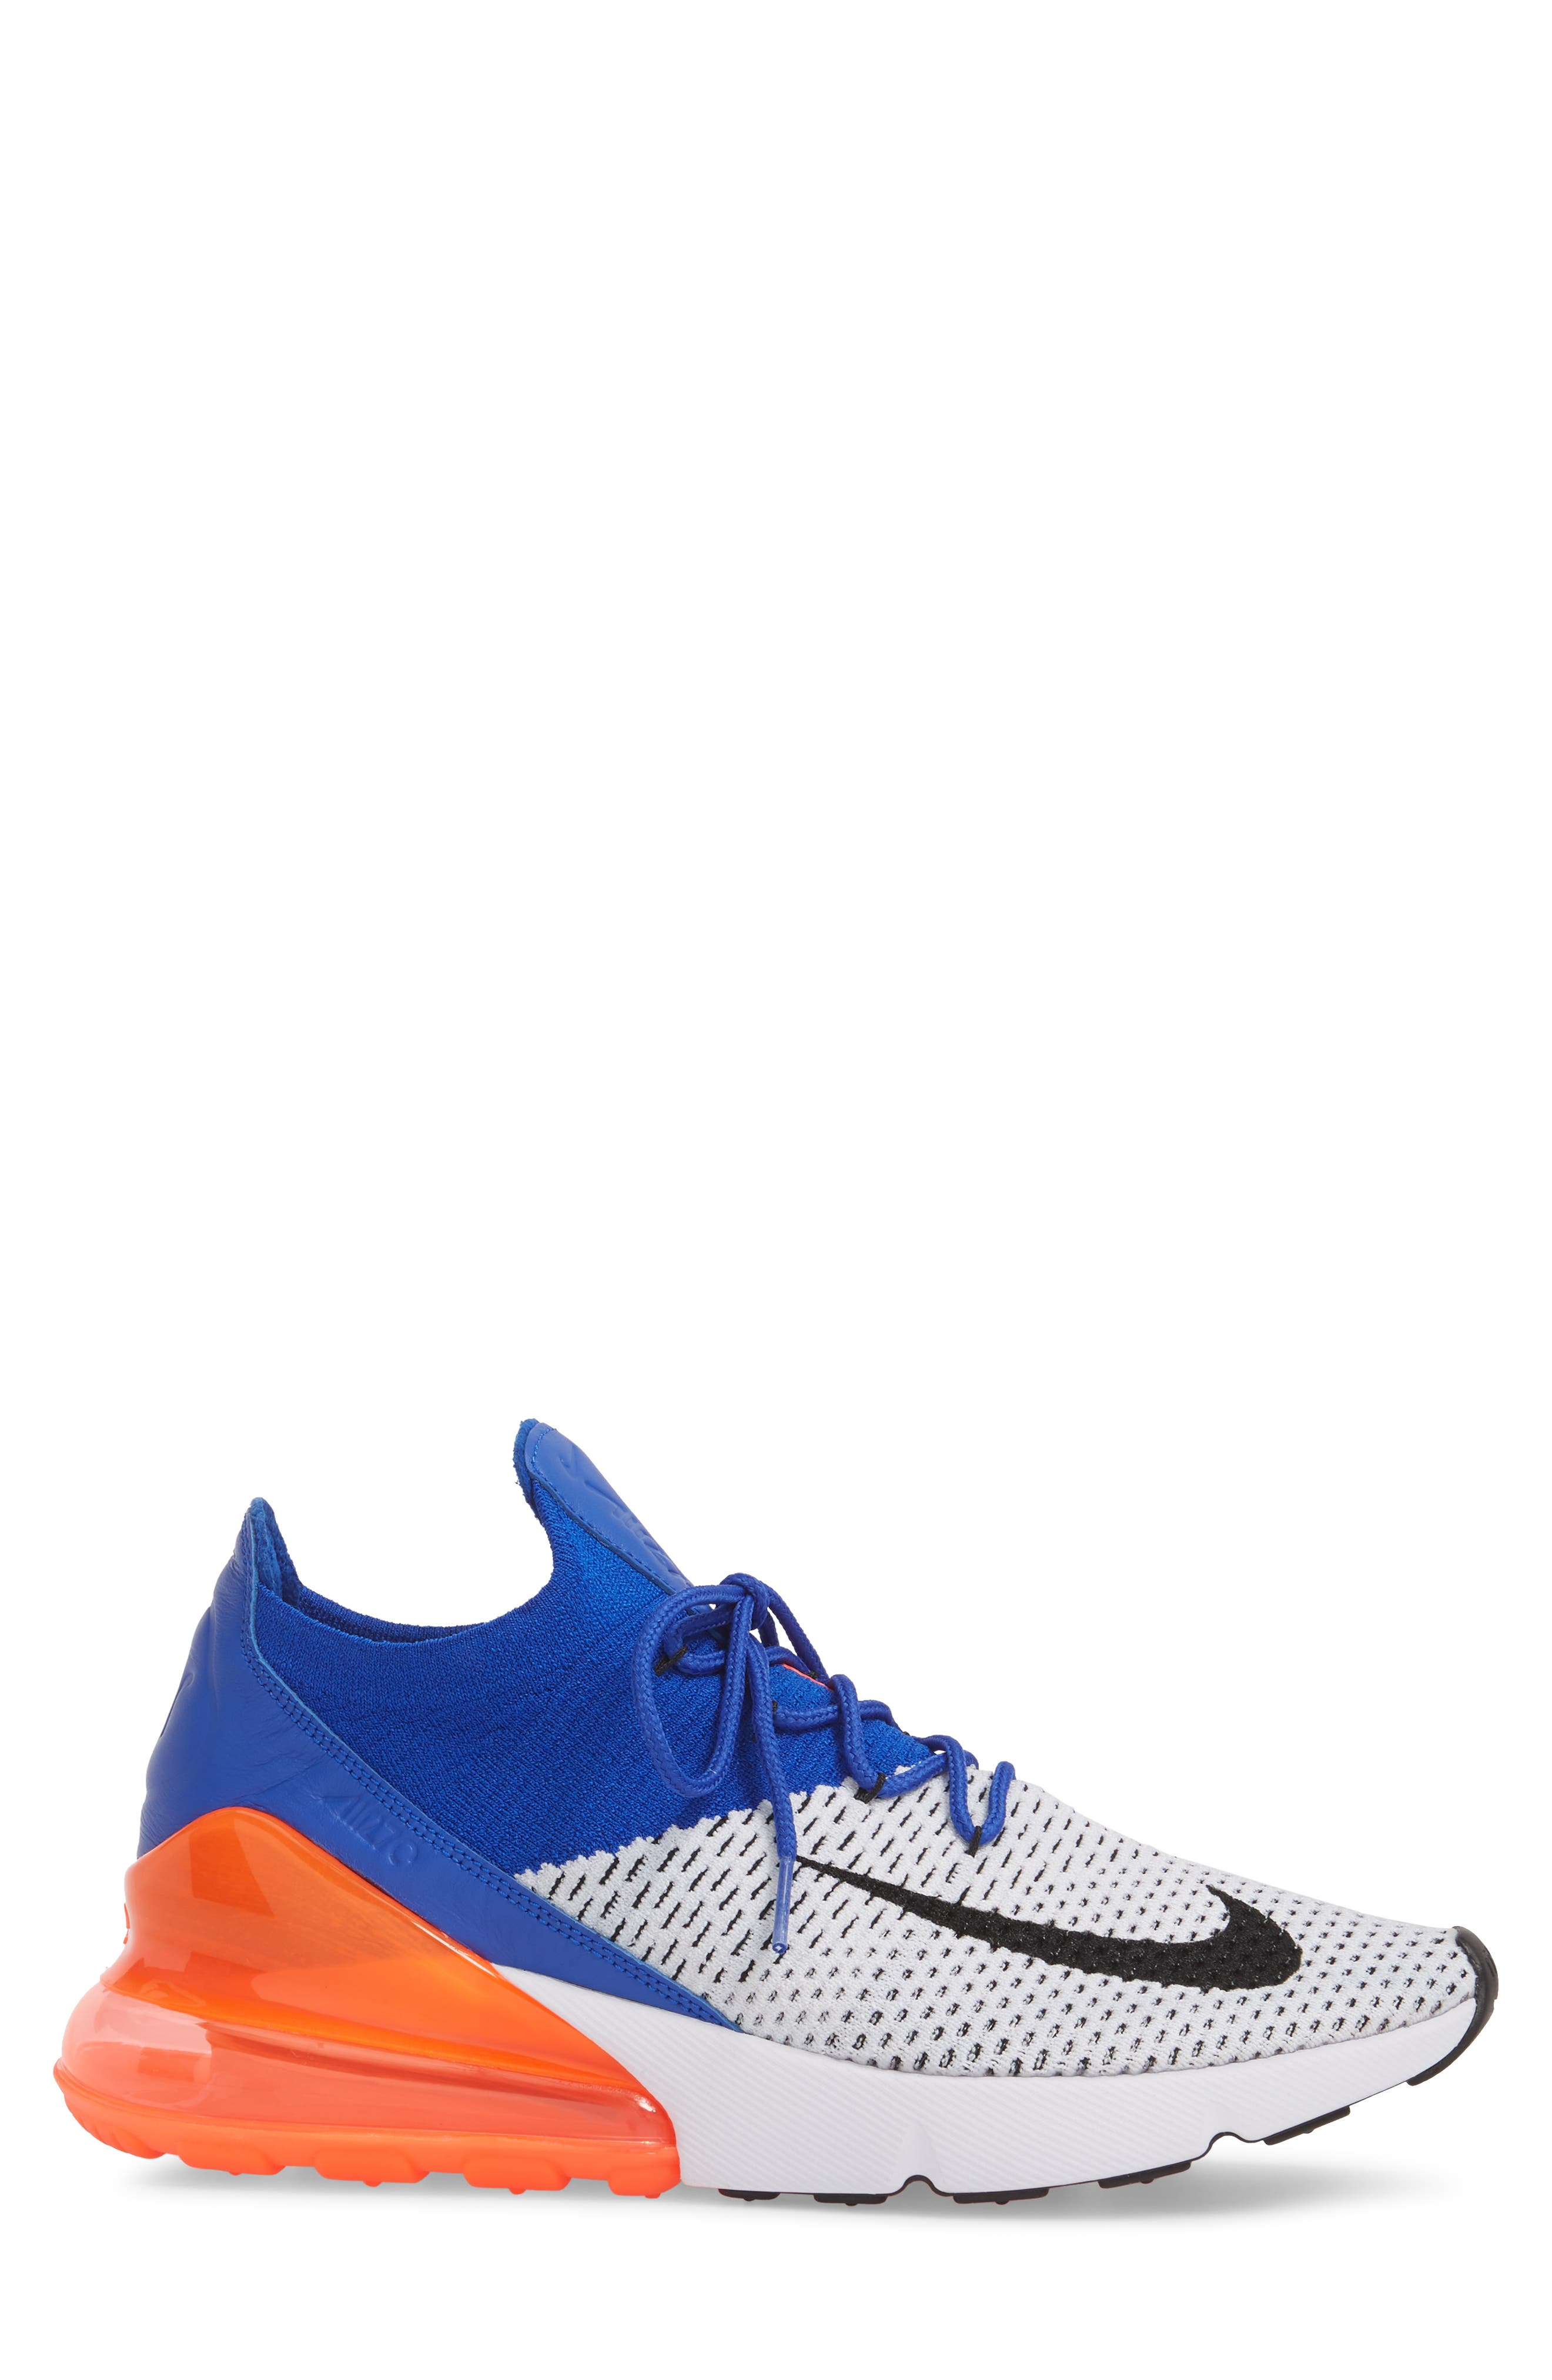 Air Max 270 Flyknit Sneaker,                             Alternate thumbnail 17, color,